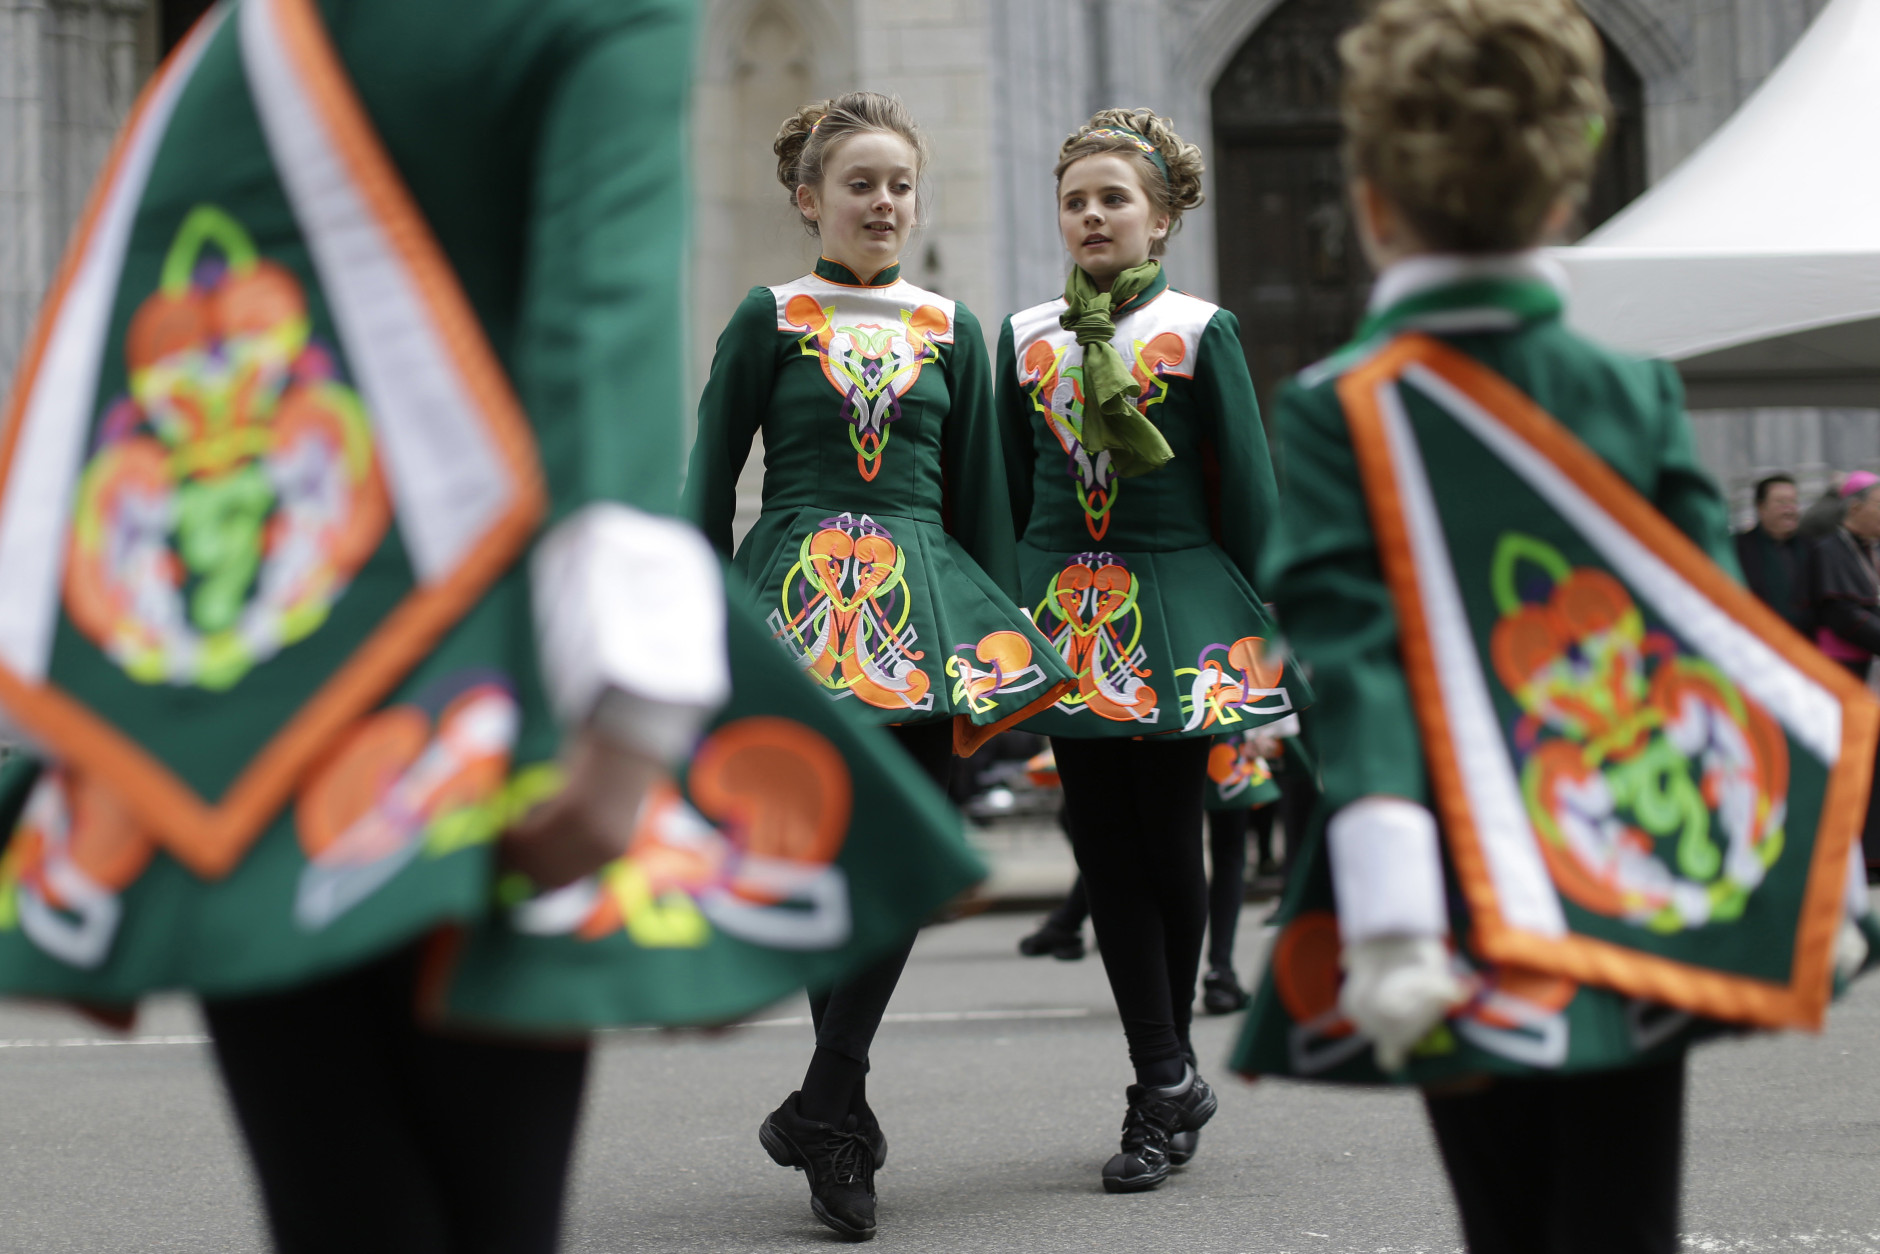 FILE - In this March 17, 2015 file photo, girls perform a traditional Irish step dance as they march up Fifth Avenue during the St. Patrick's Day Parade in New York. The parade traces its history to 1762 and has about 200,000 marchers. (AP Photo/Mary Altaffer, File)